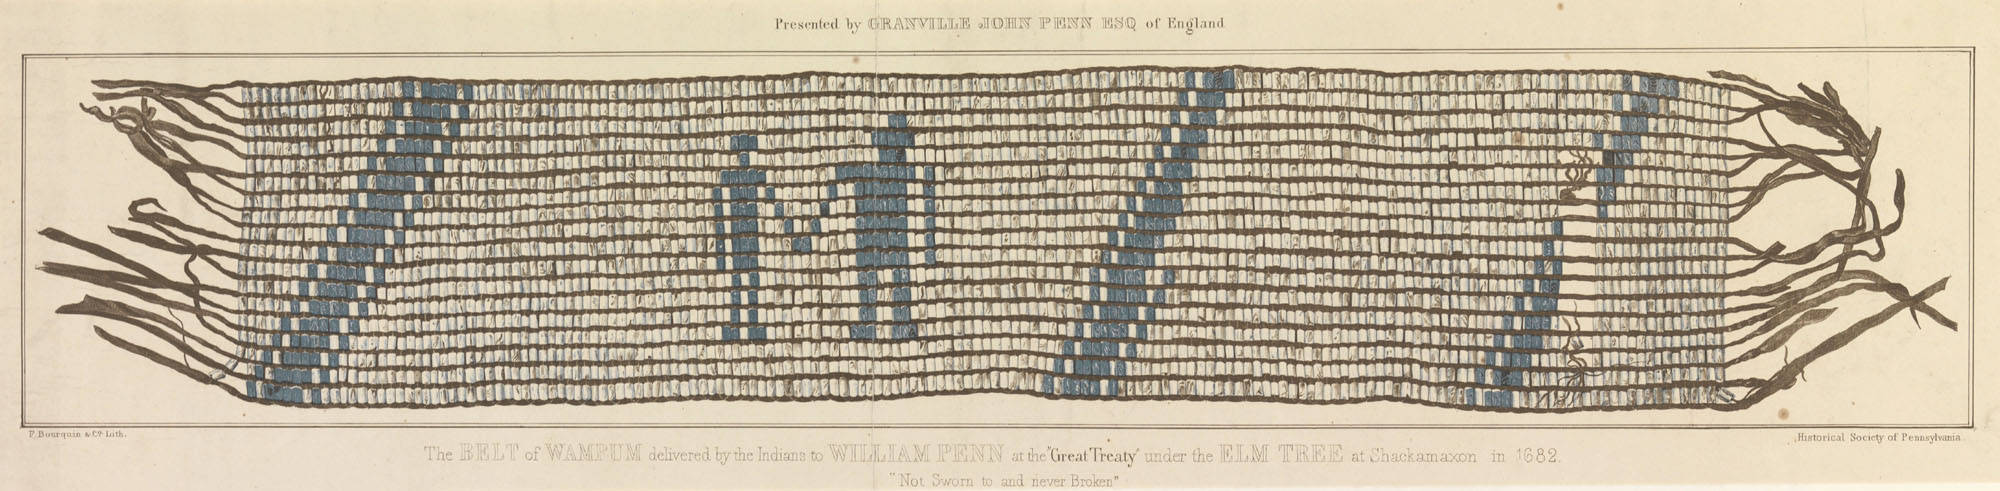 Woven piece of art showing two people holding hands